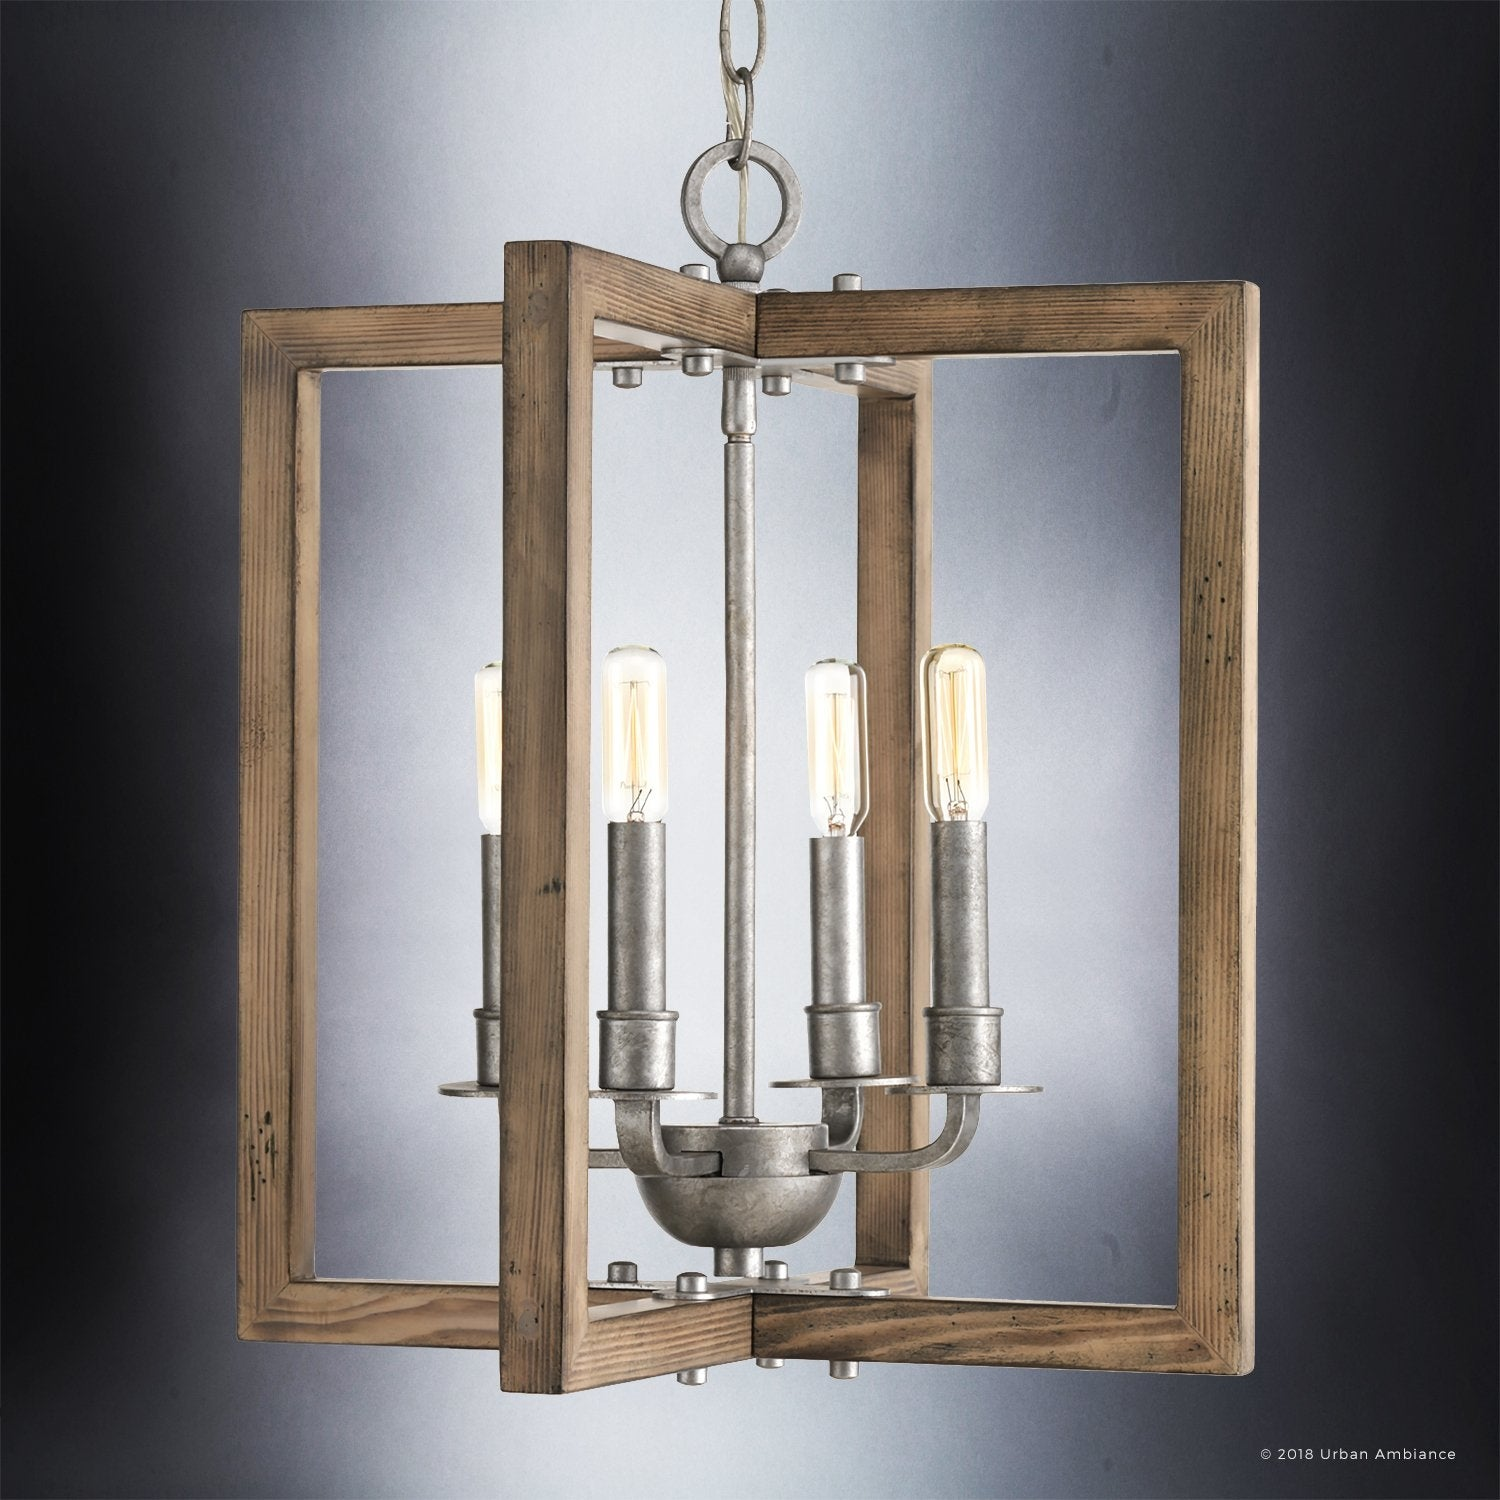 Shop luxury modern farmhouse chandelier 18 75h x 16w with rustic style galvanized steel finish by urban ambiance free shipping today overstock com